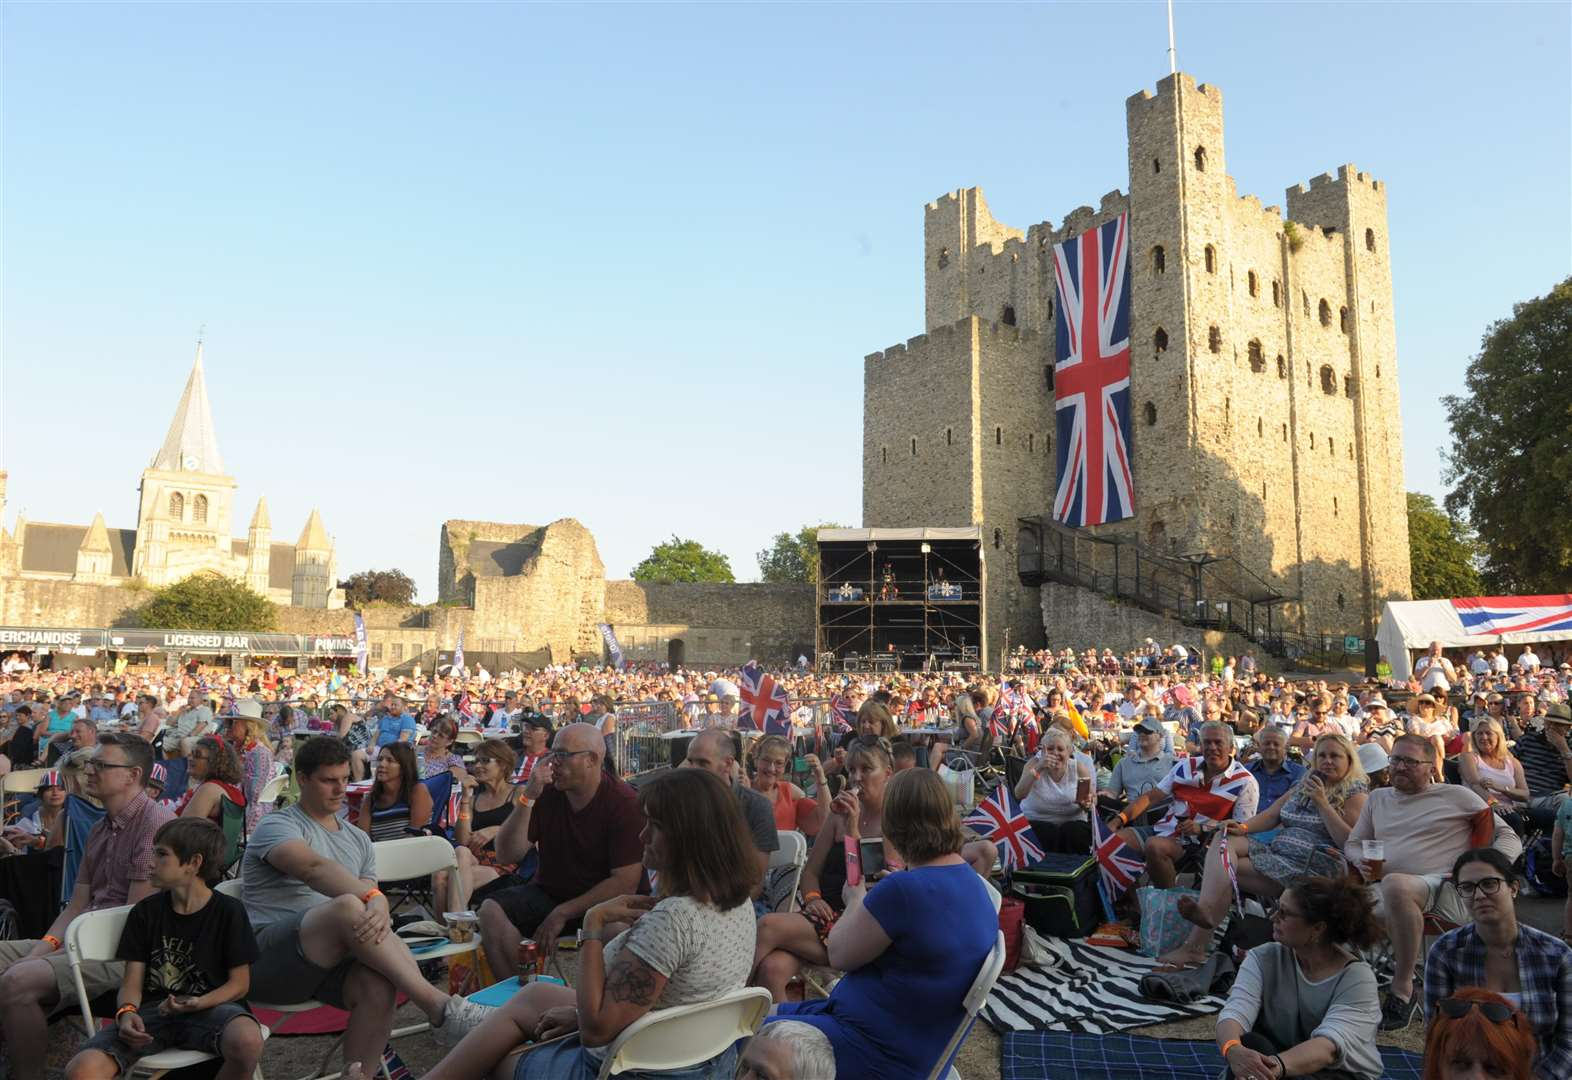 Proms provide Castle Concerts climax